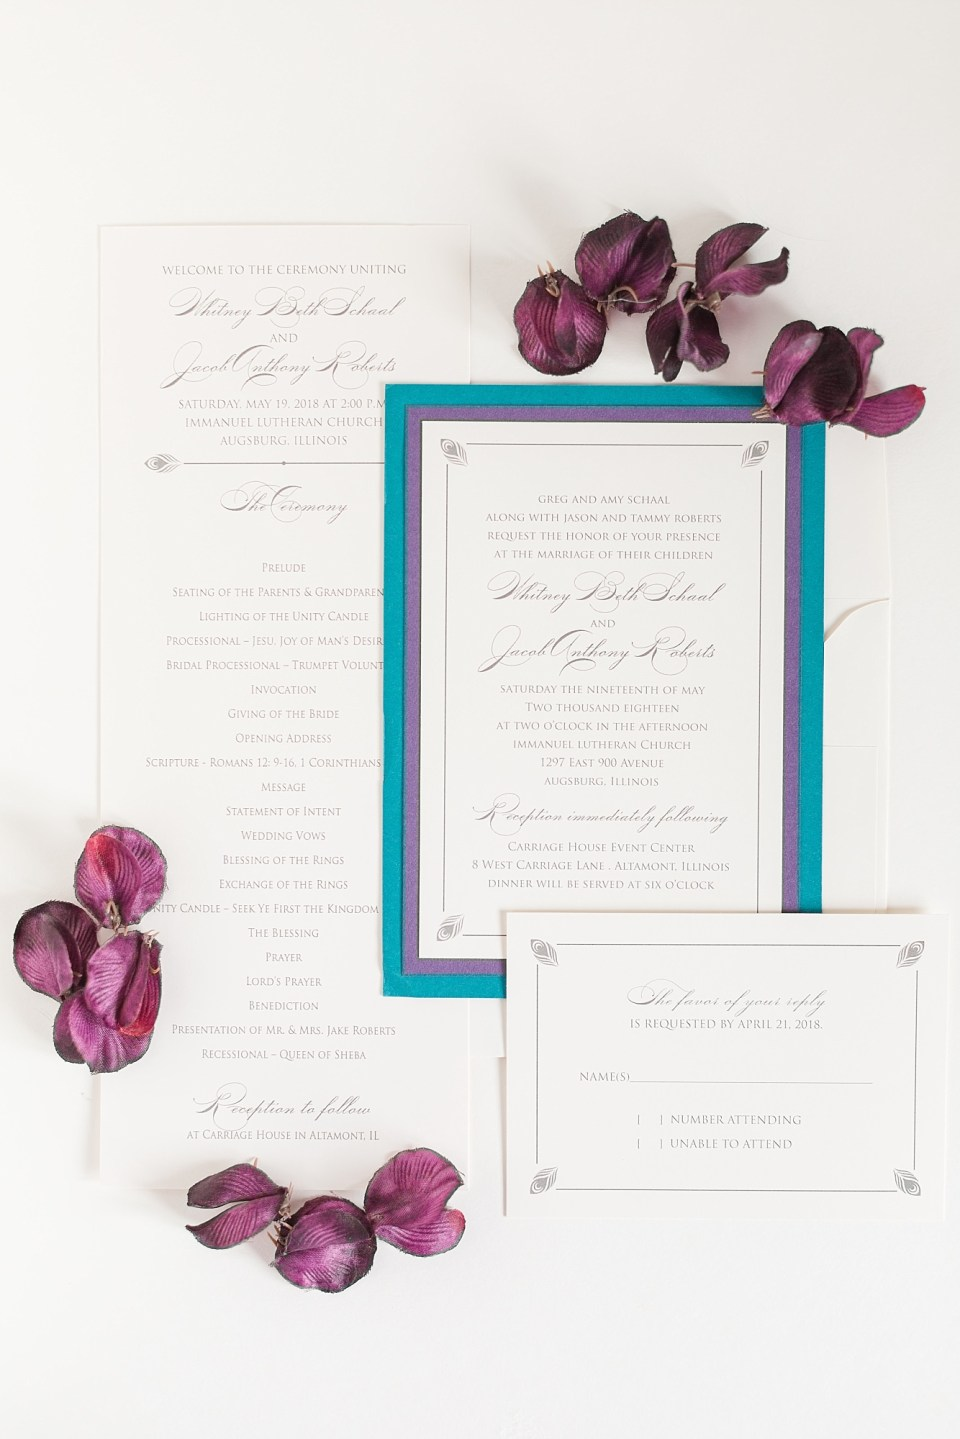 White wedding invites with purple and blue edging and peacock feather details